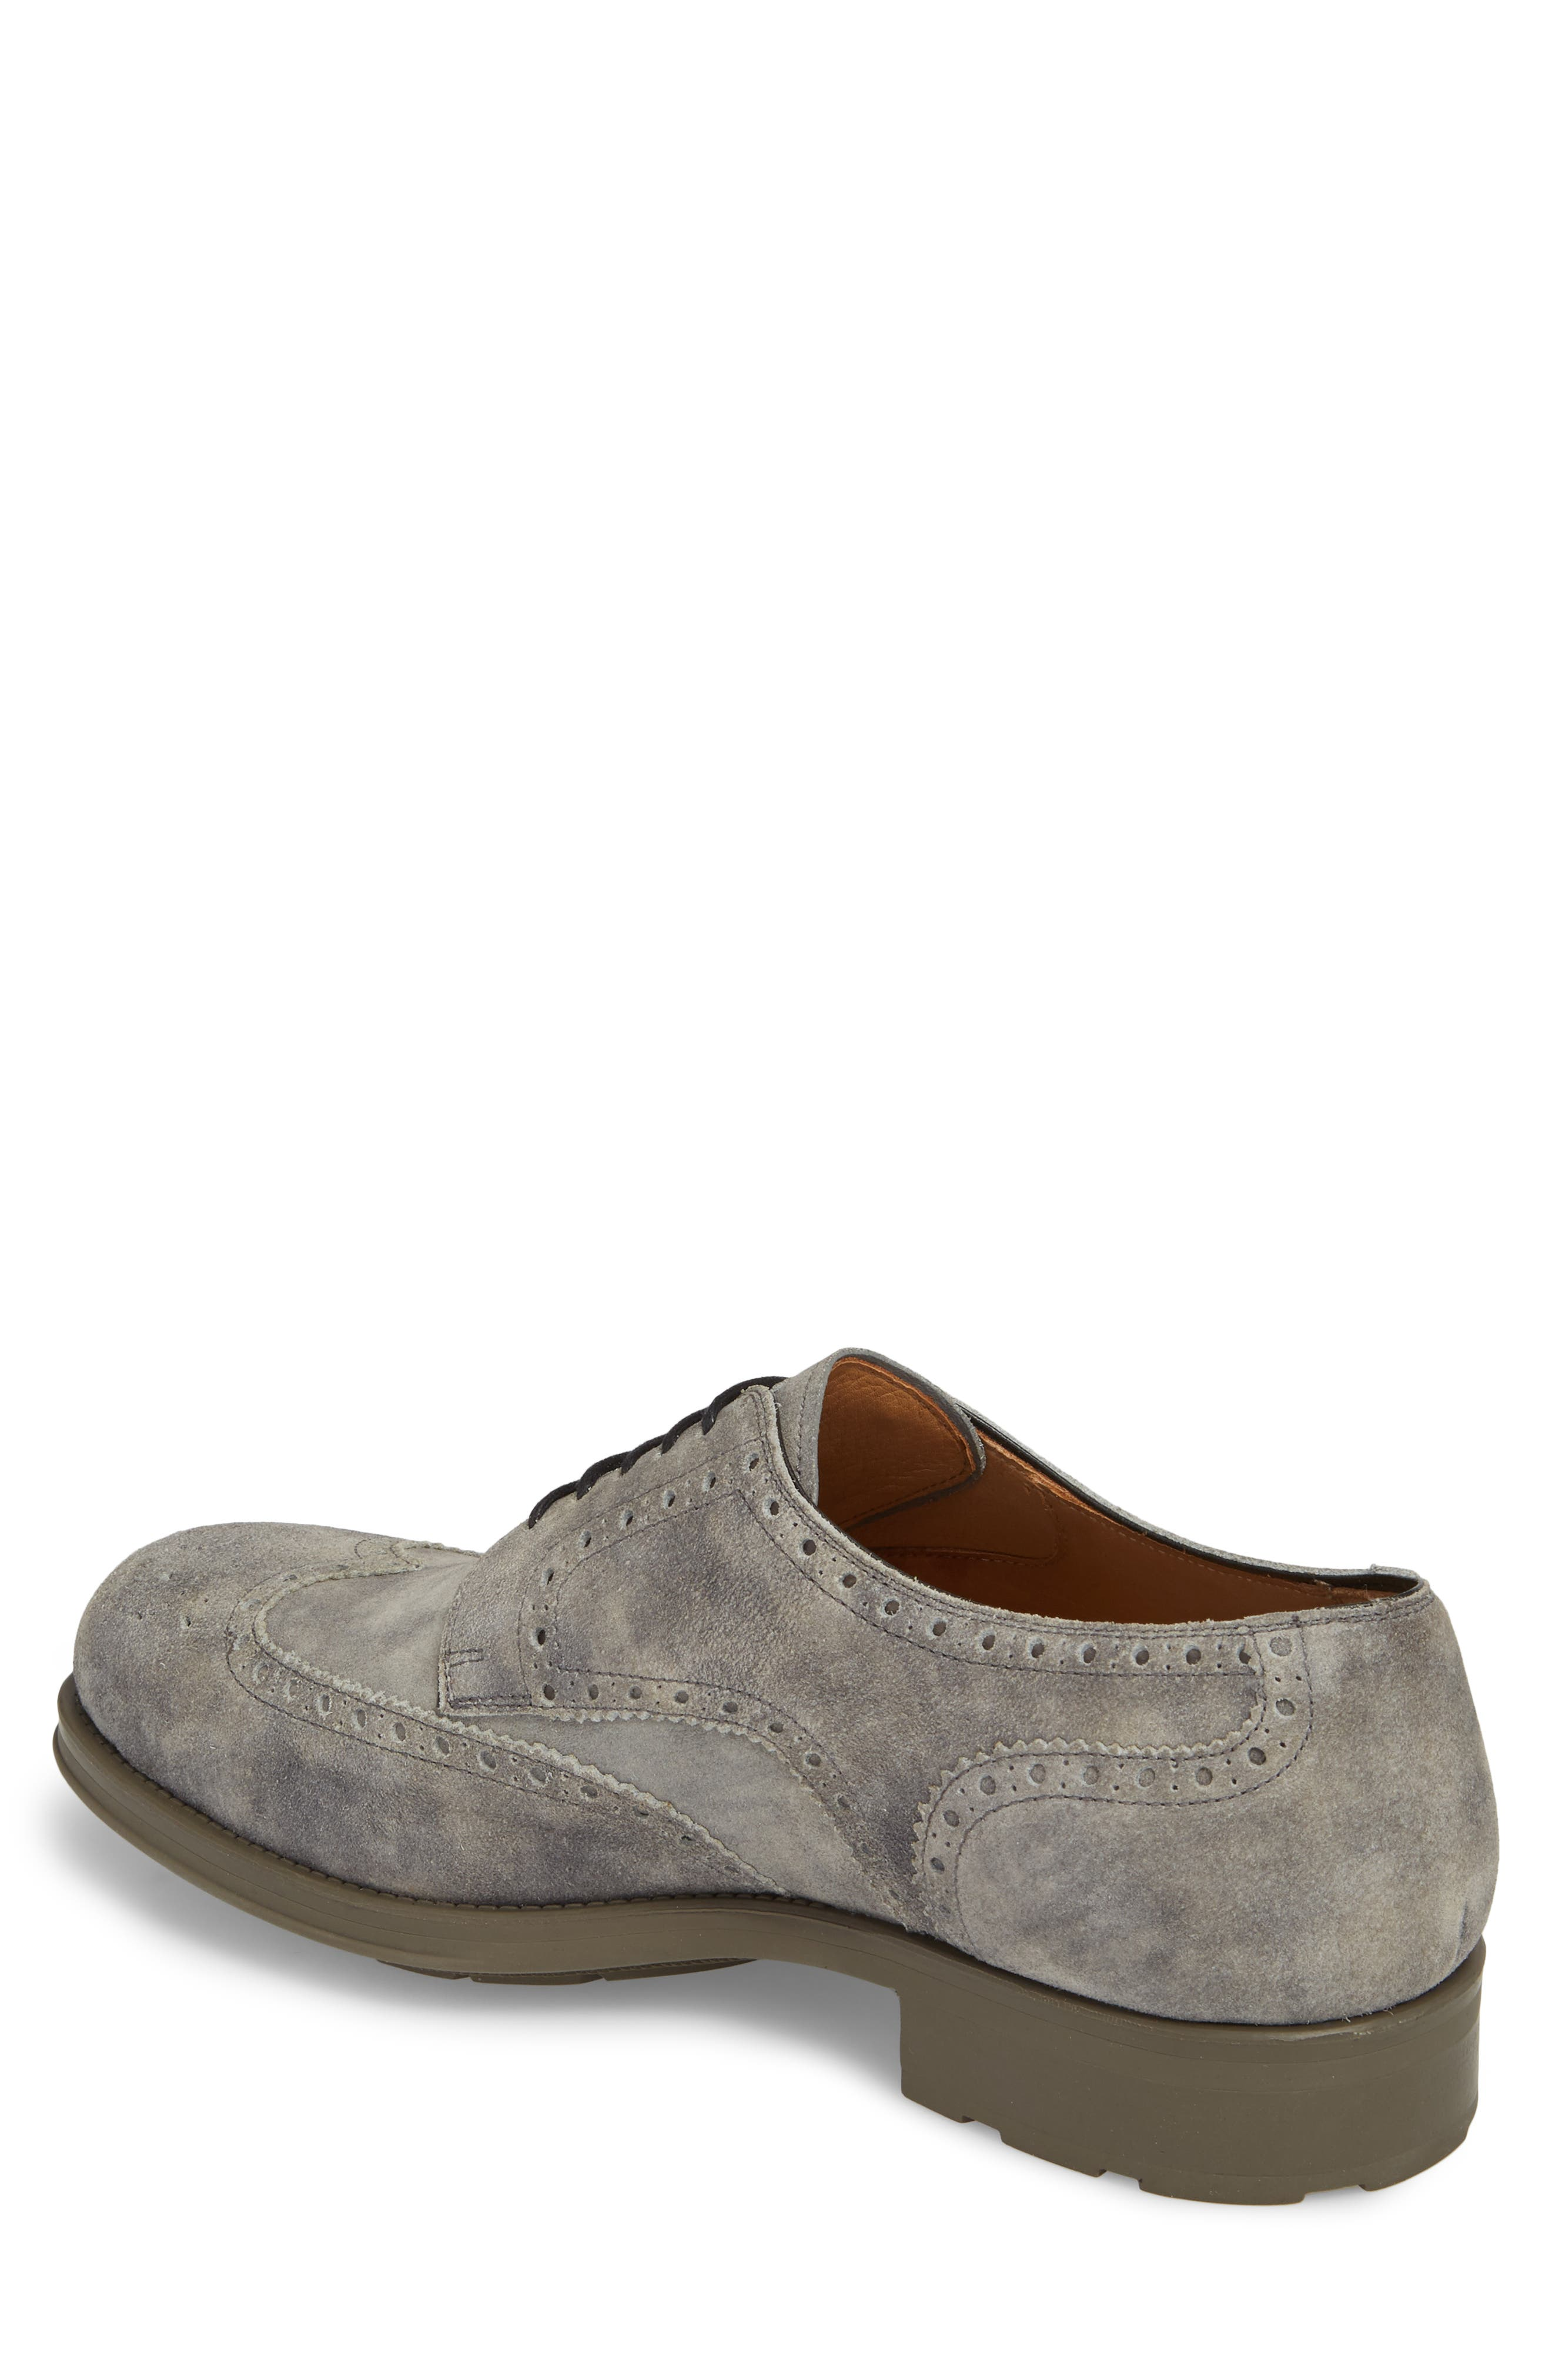 Tormo Wingtip,                             Alternate thumbnail 2, color,                             Grey Leather